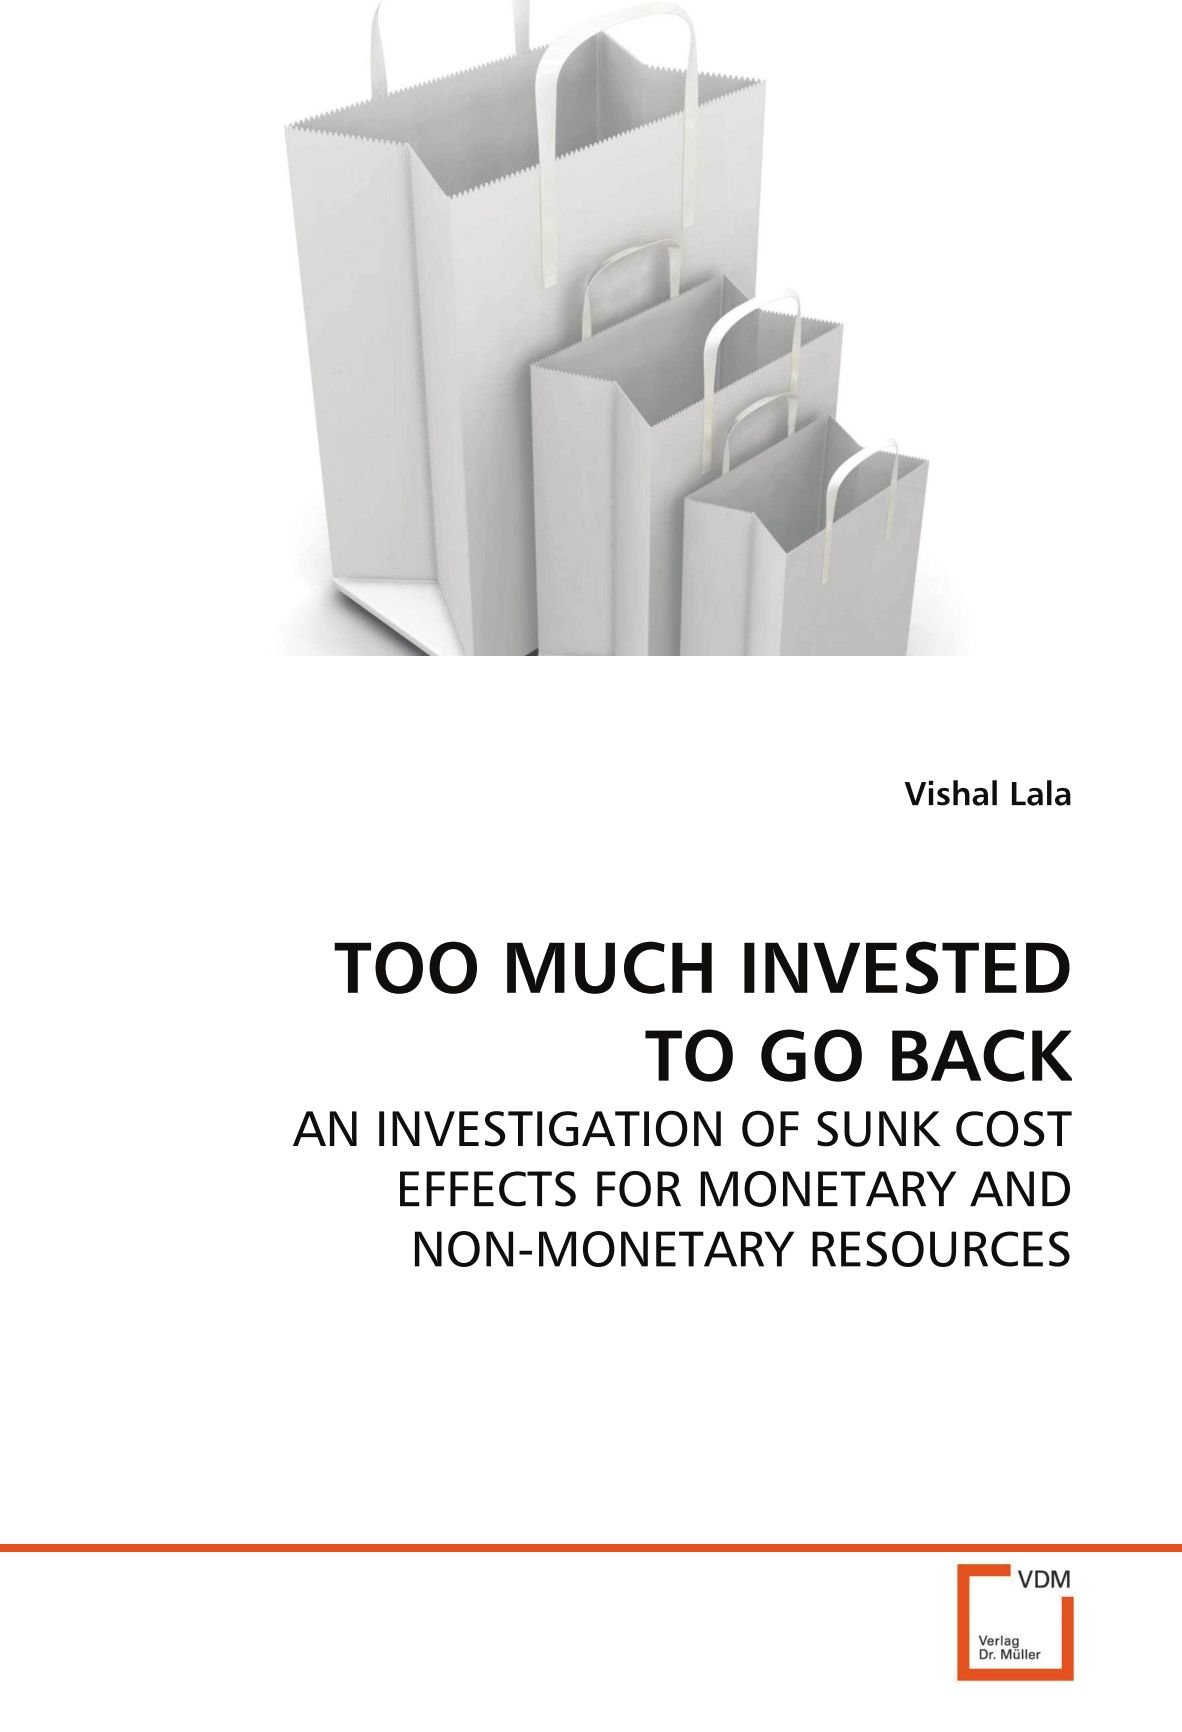 TOO MUCH INVESTED TO GO BACK: AN INVESTIGATION OF SUNK COST EFFECTS FOR MONETARY AND NON-MONETARY RESOURCES PDF